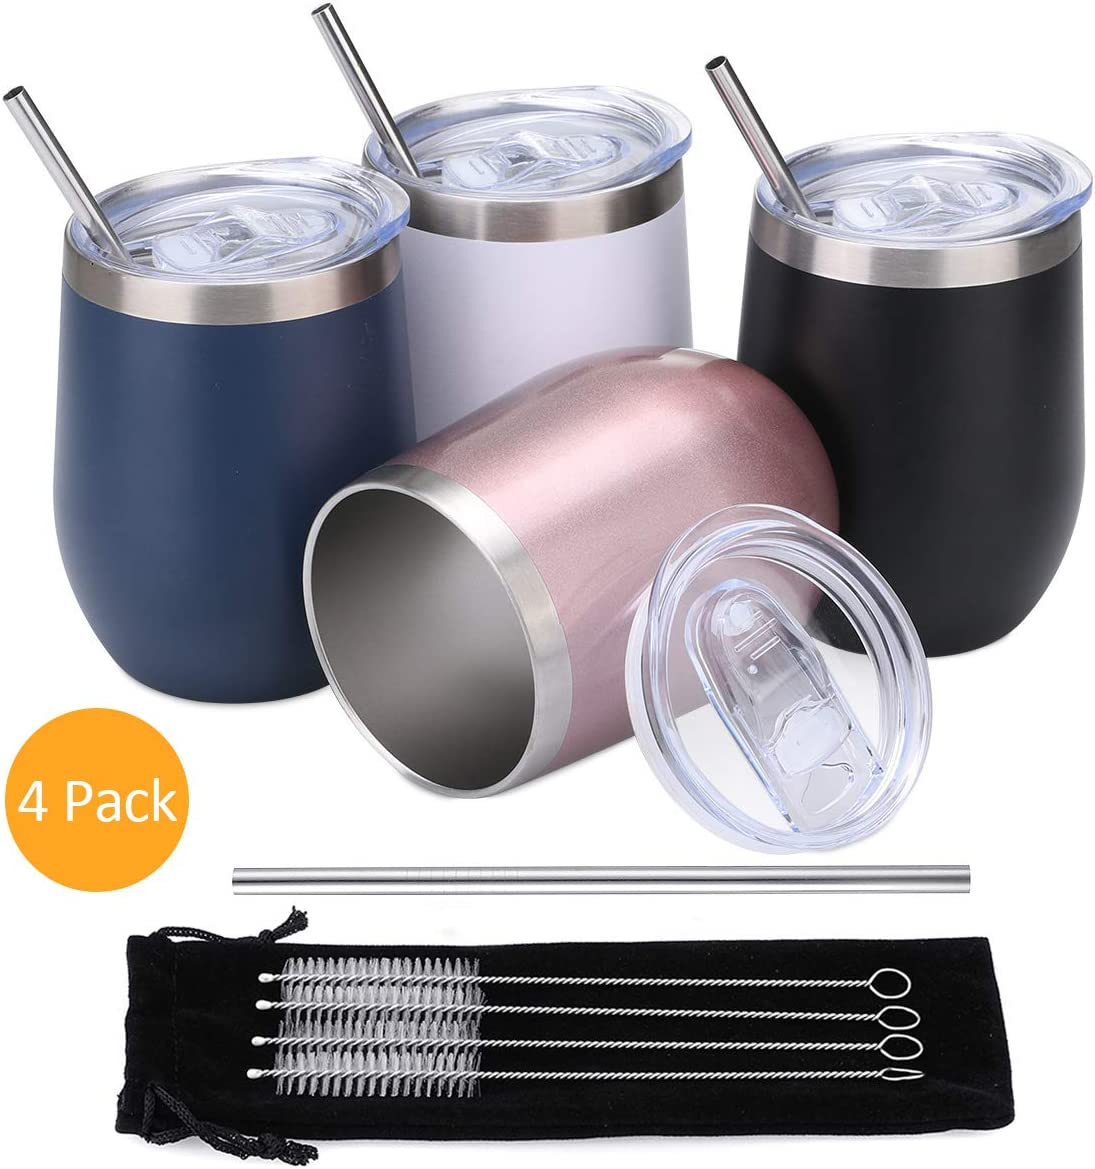 Comfook 4 Pack 12OZ Stainless Steel Wine Tumbler,Stemless Vacuum Insulated Wine Glasses with Straws Set and Spill Proof Lid for Parties,Bars,Home, Work, Travel, Fashion